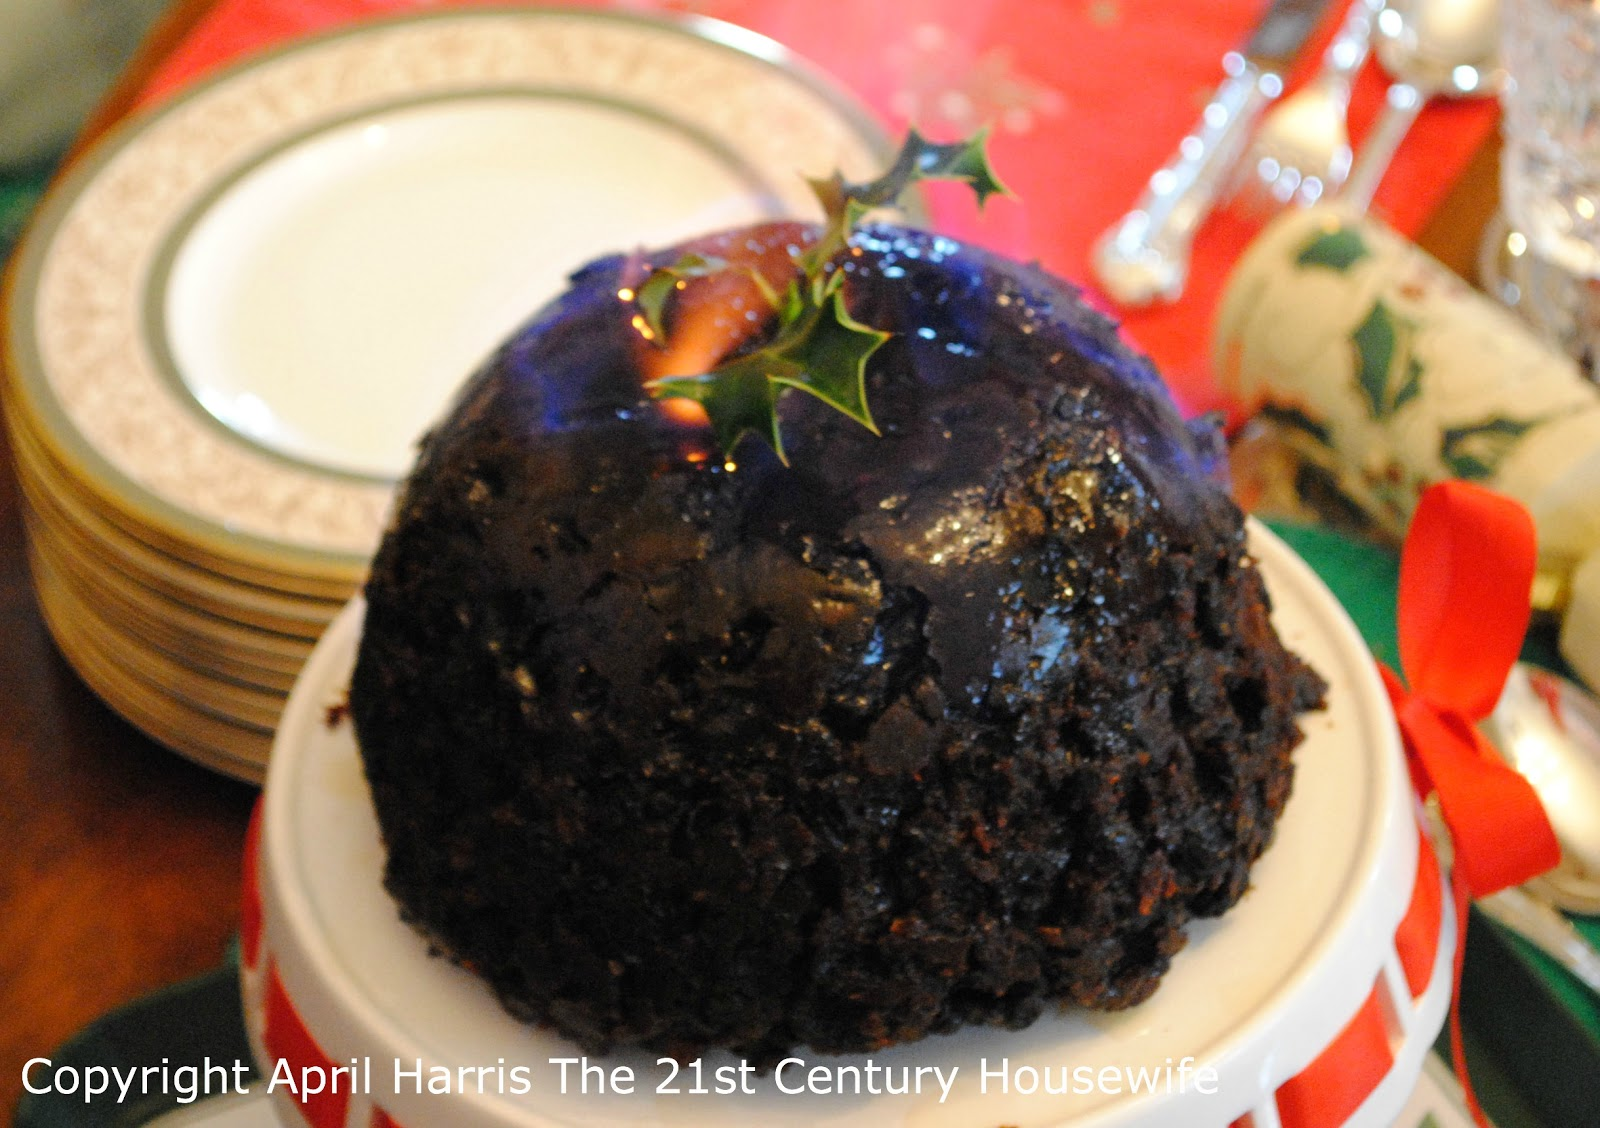 ... Housewife's Kitchen: A Victorian Family Recipe for Christmas Pudding